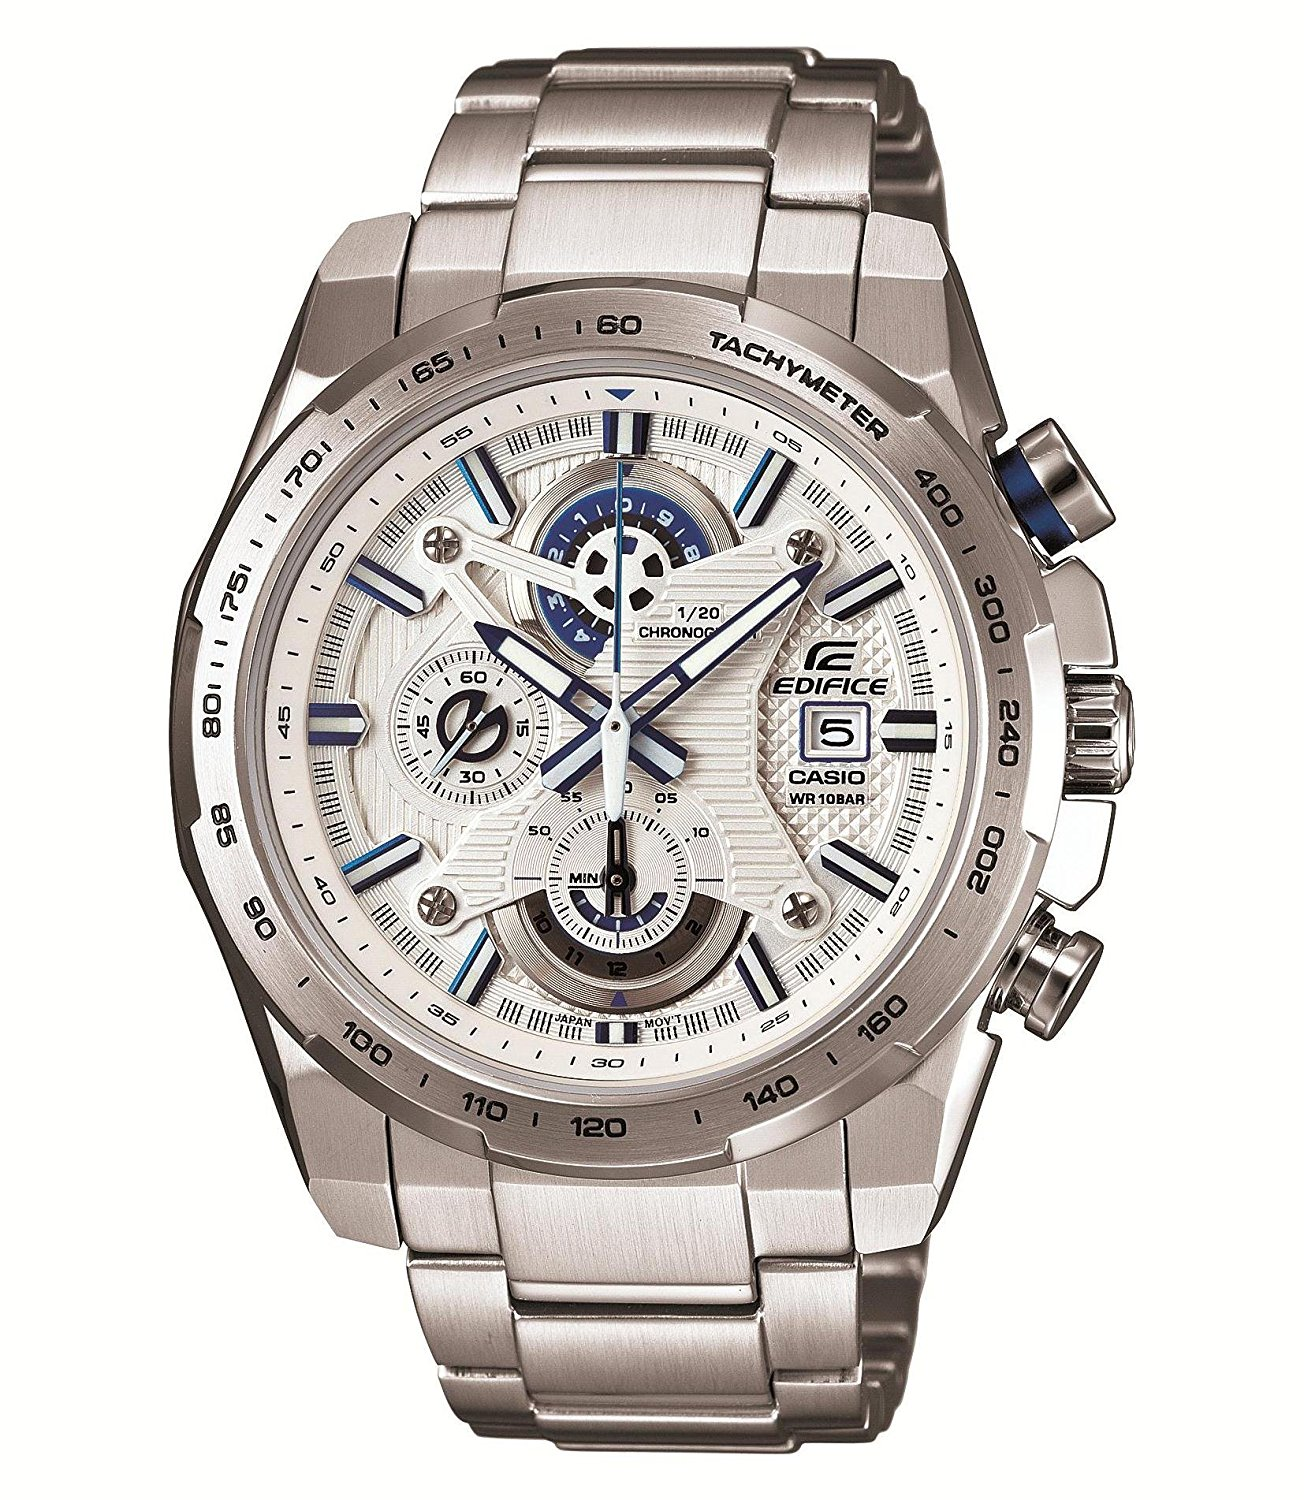 Casio EDIFICE Chronograph Watch EFR-523DJ-7AJF (Japan Import)